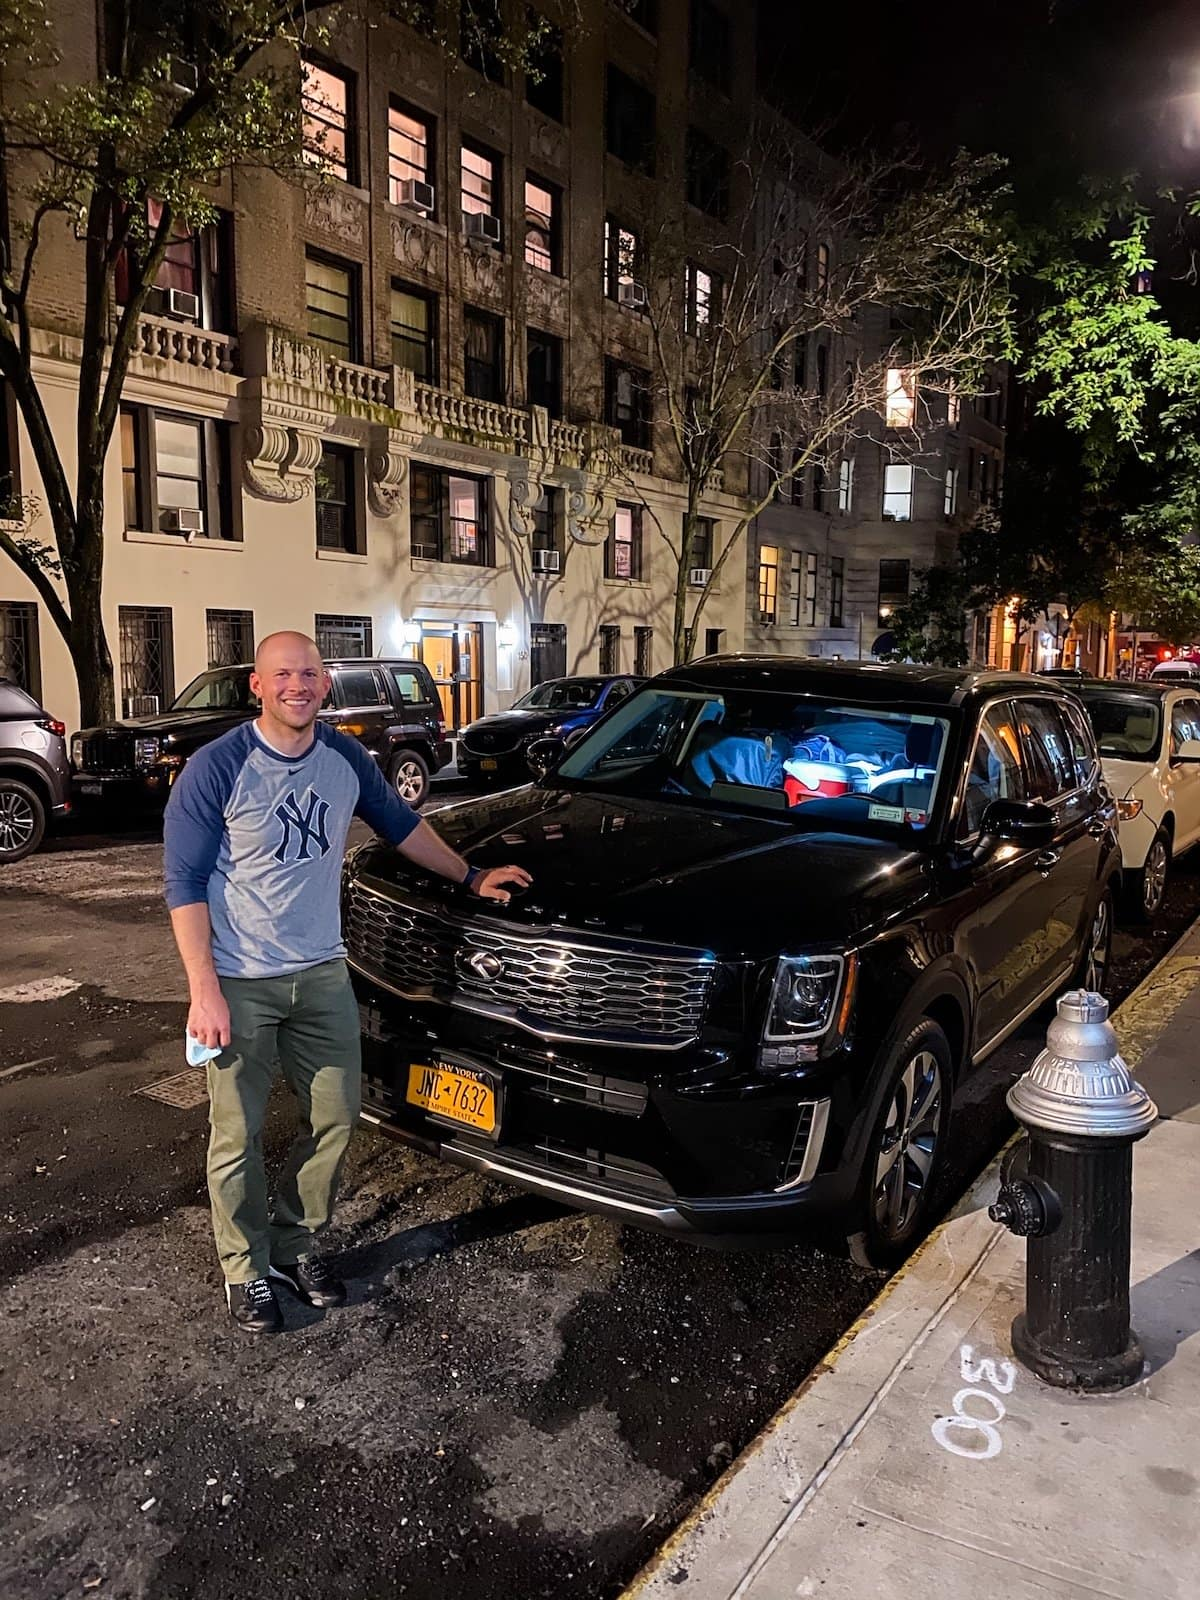 man standing in front of car on NYC street